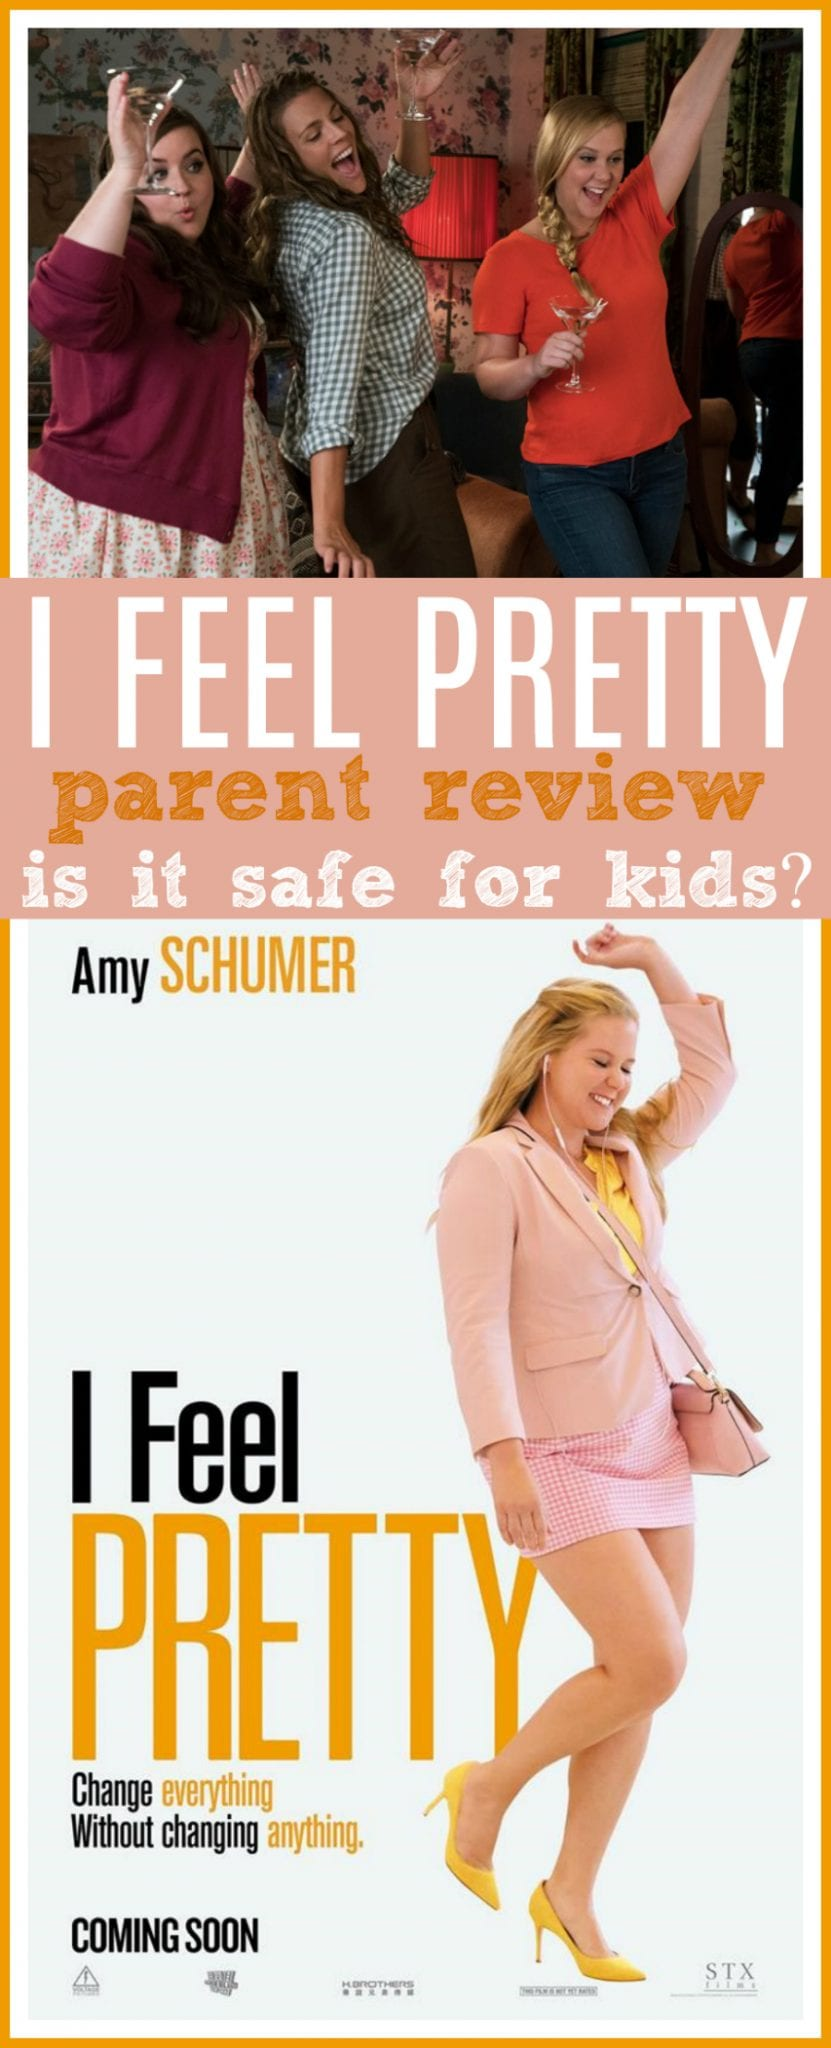 I feel pretty review for kids